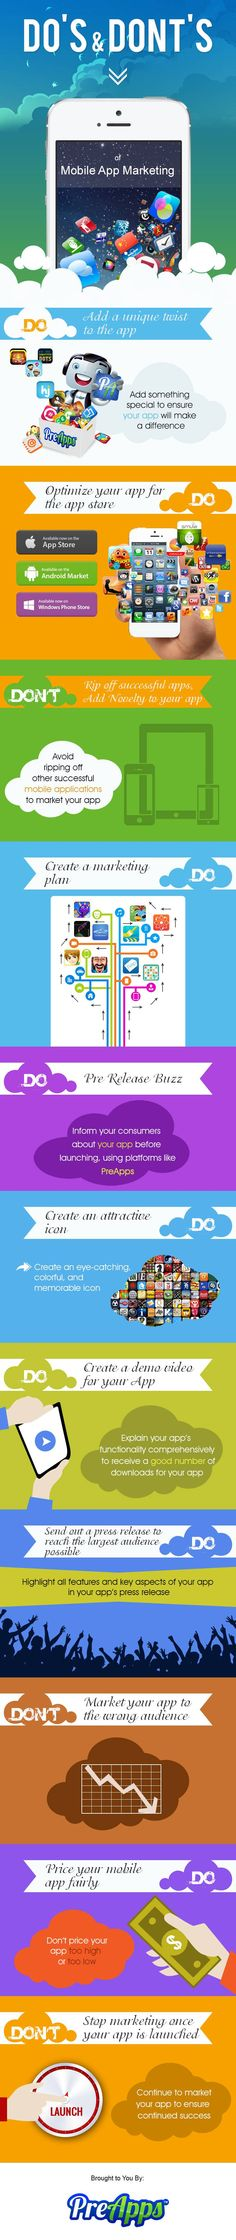 Do's and Dont's of #Mobile #App #Marketing #infographic